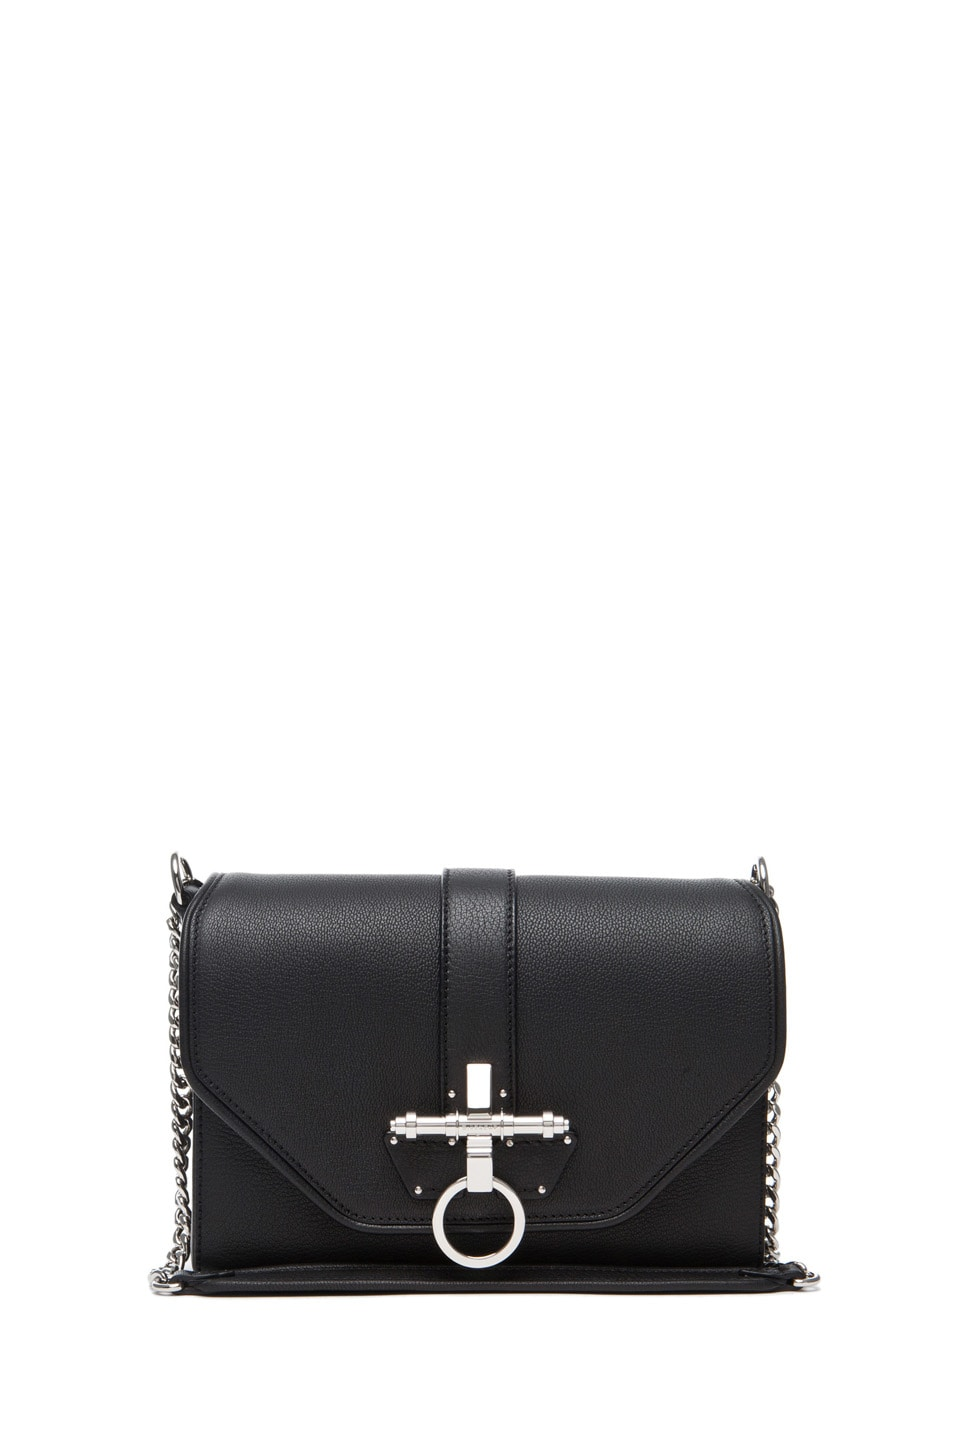 Image 1 of Givenchy Obsedia with Chain in Black